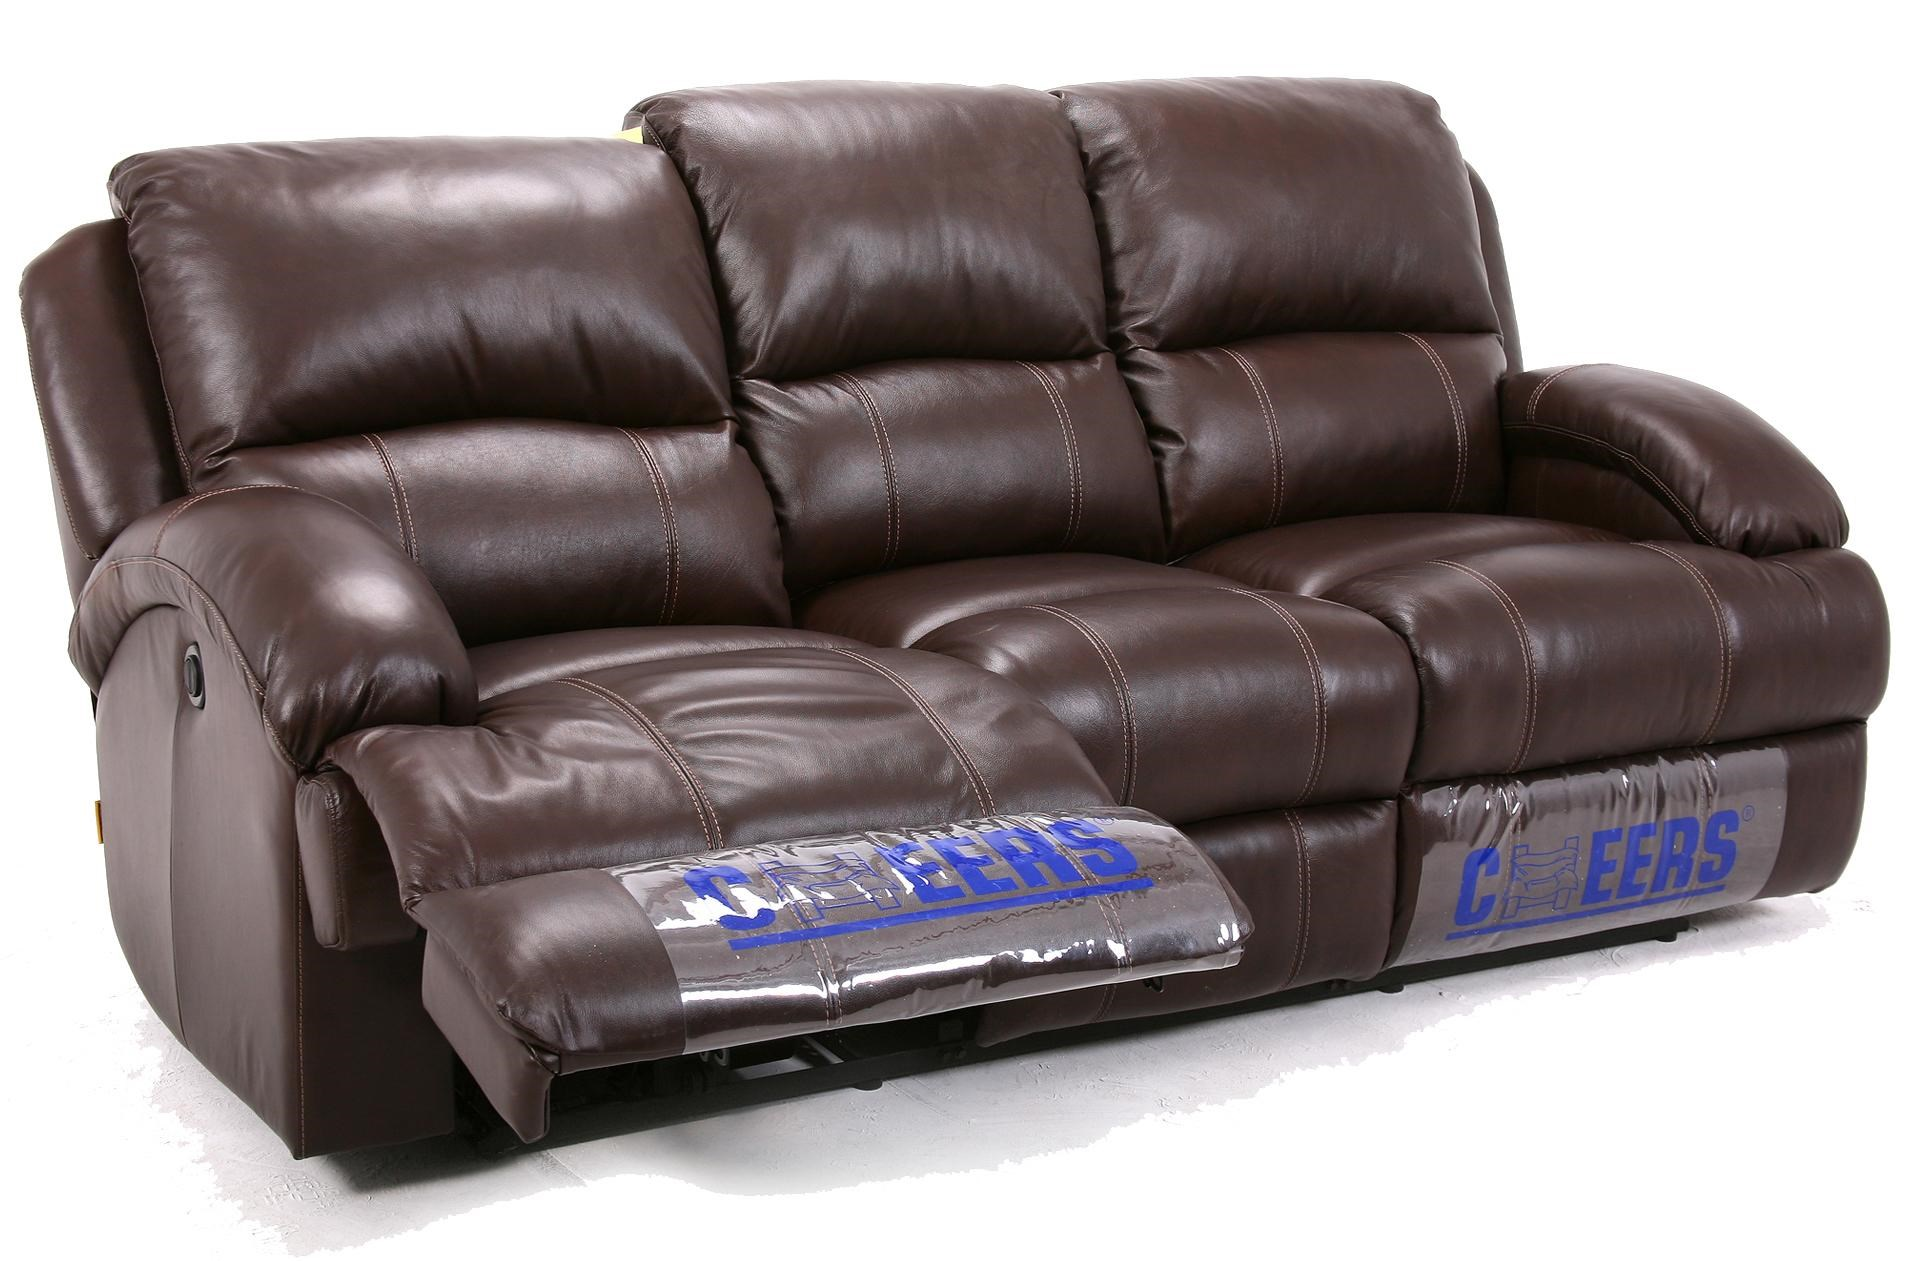 Man Wah Furniture Cheers Sofa Manwah Furniture A67 Mongalab Costco Couch Costco Futons Couches